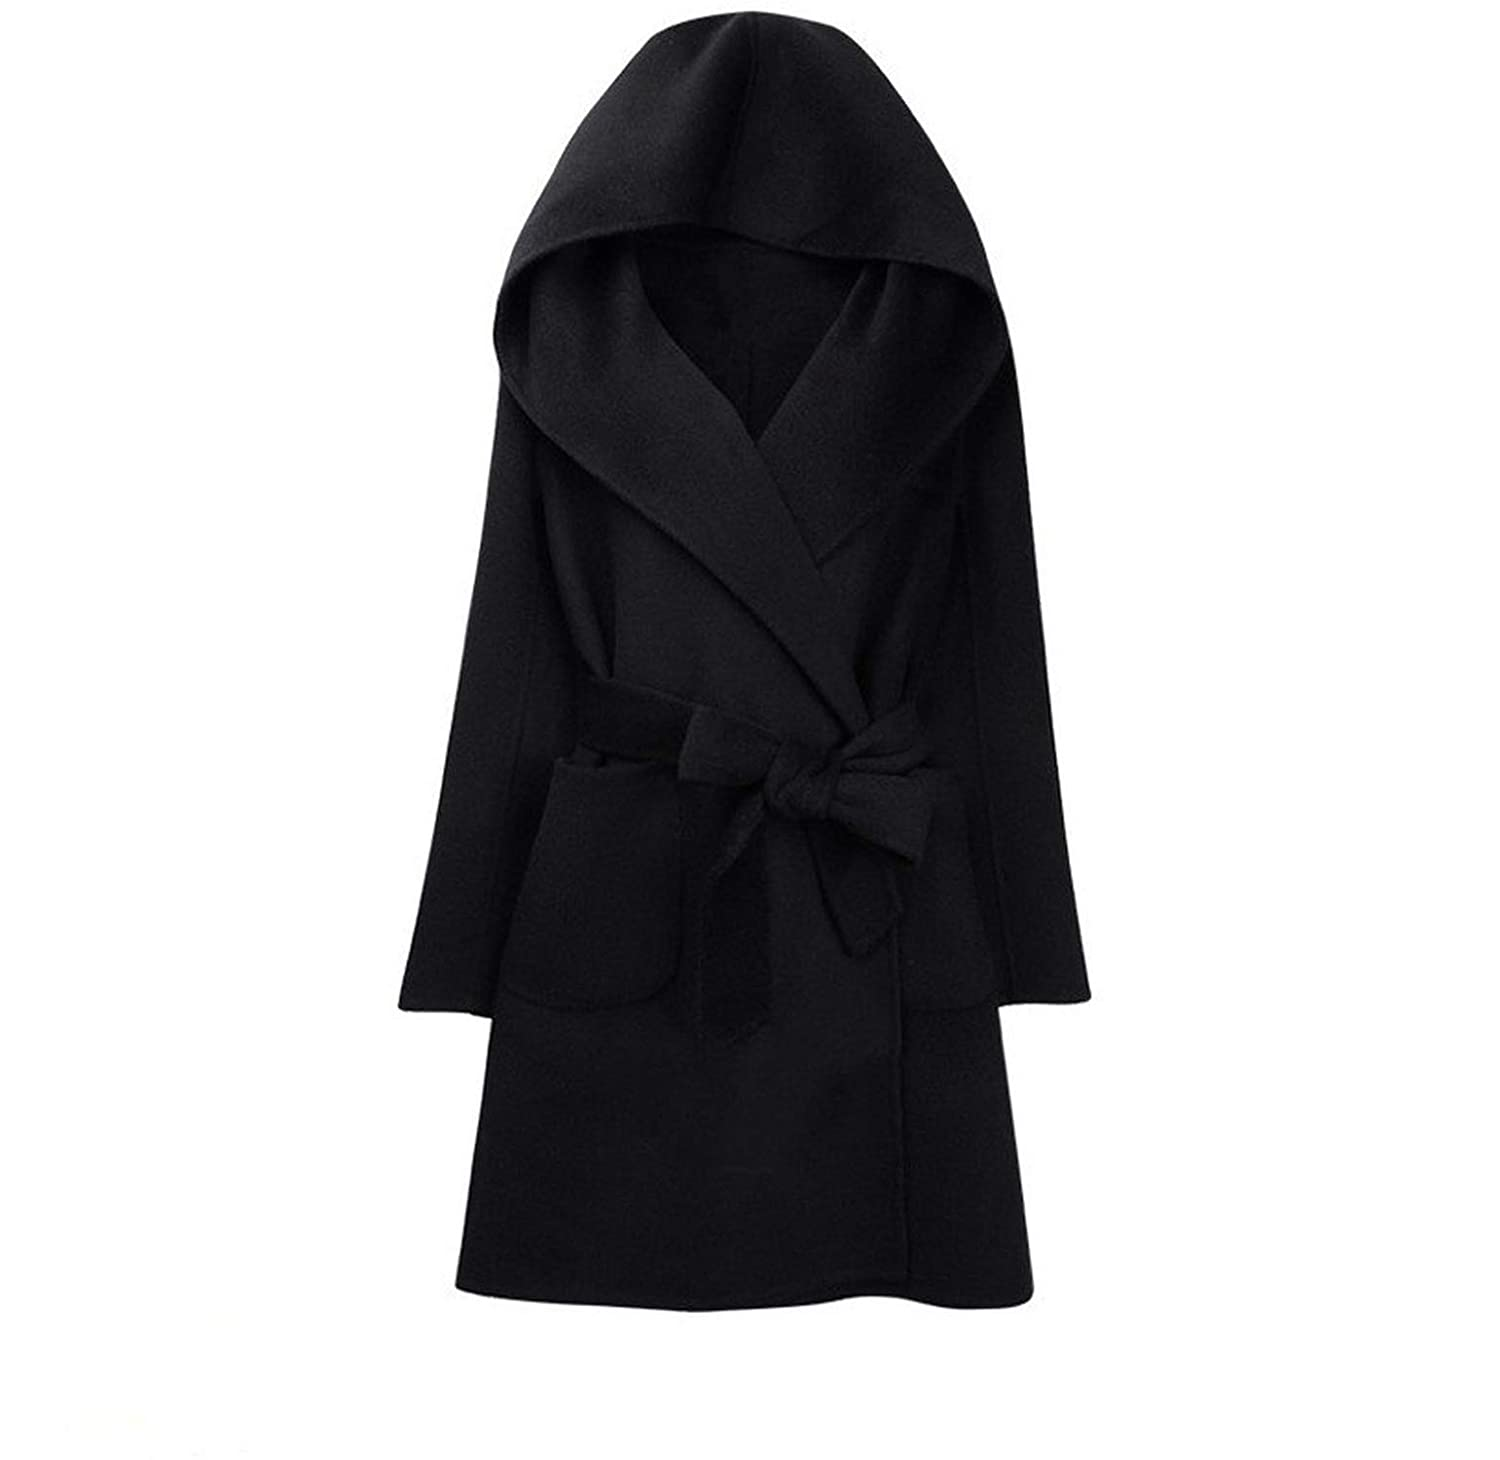 Black Casual Fashion Women Long Cashmer Coat Long Solid Women's Woolen Jacket Hooded Coat and Jacket